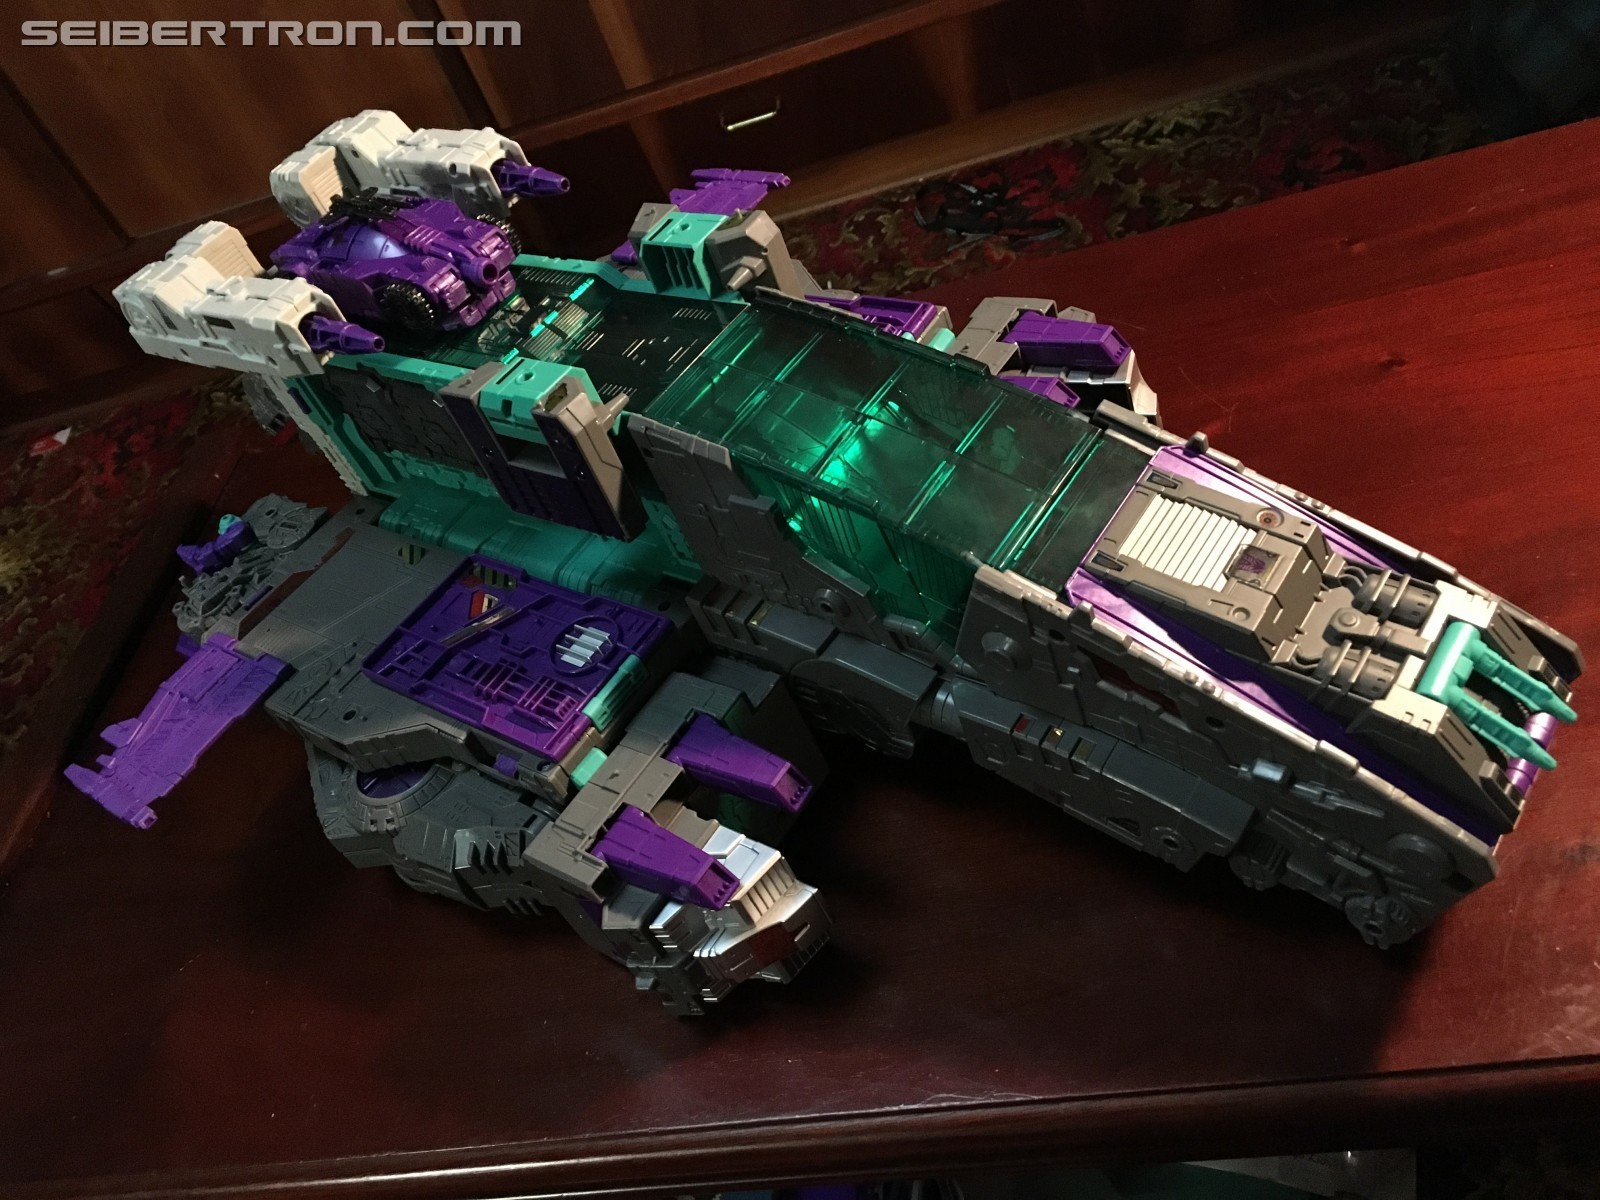 Transformers News: Image-Heavy Review of Transformers Generations Titan Class Trypticon